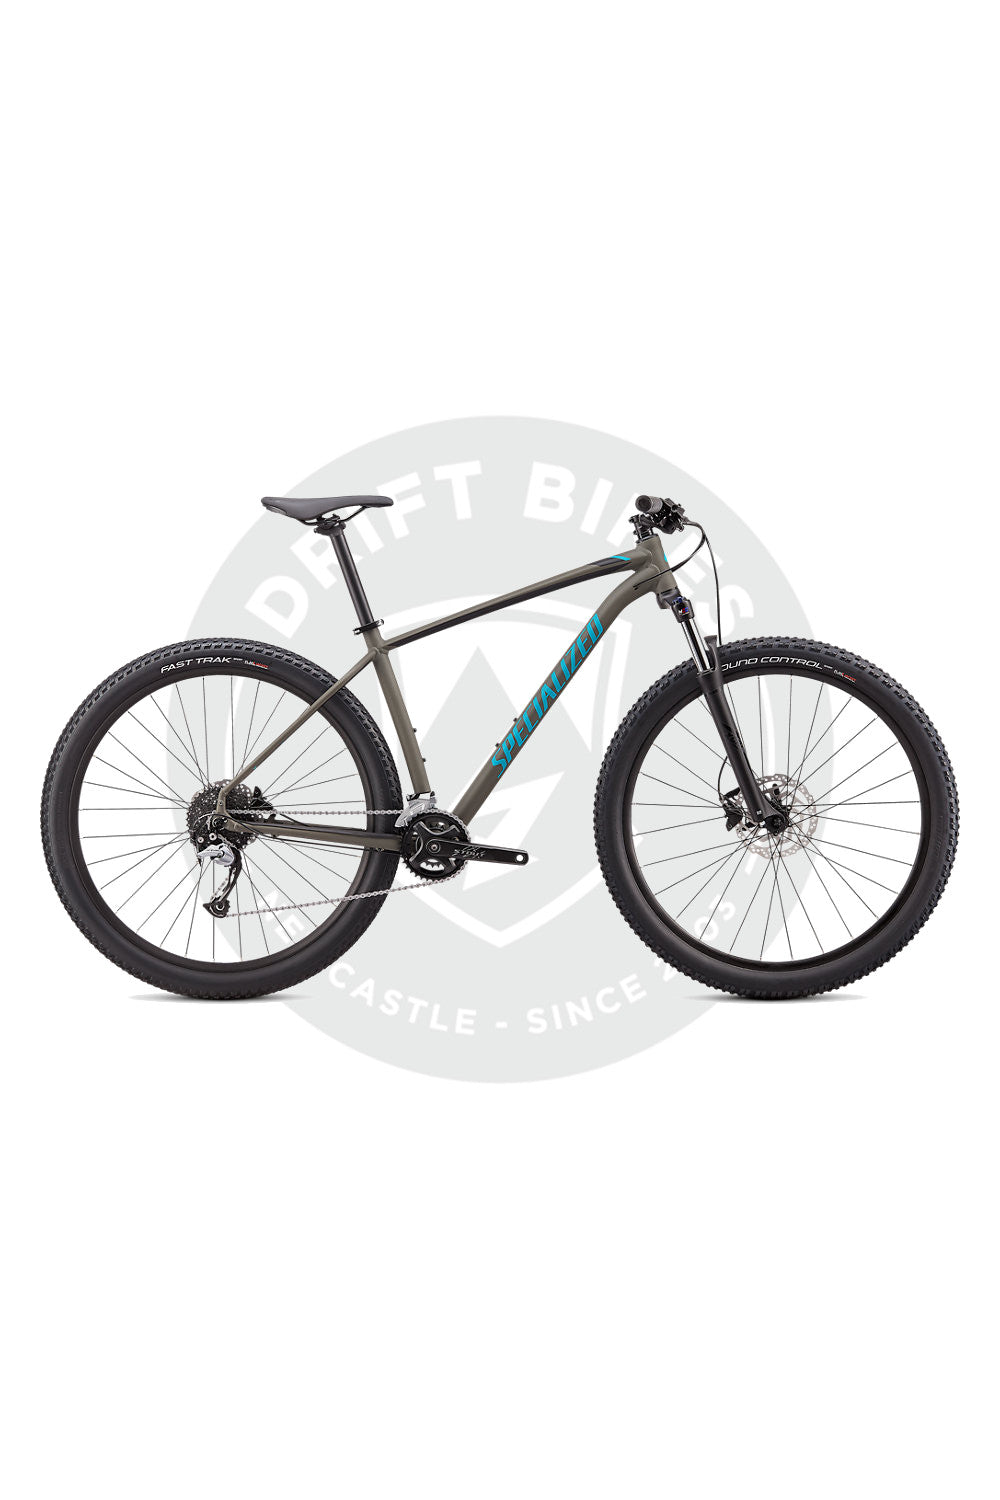 SPECIALIZED 2020 ROCKHOPPER COMP 2X